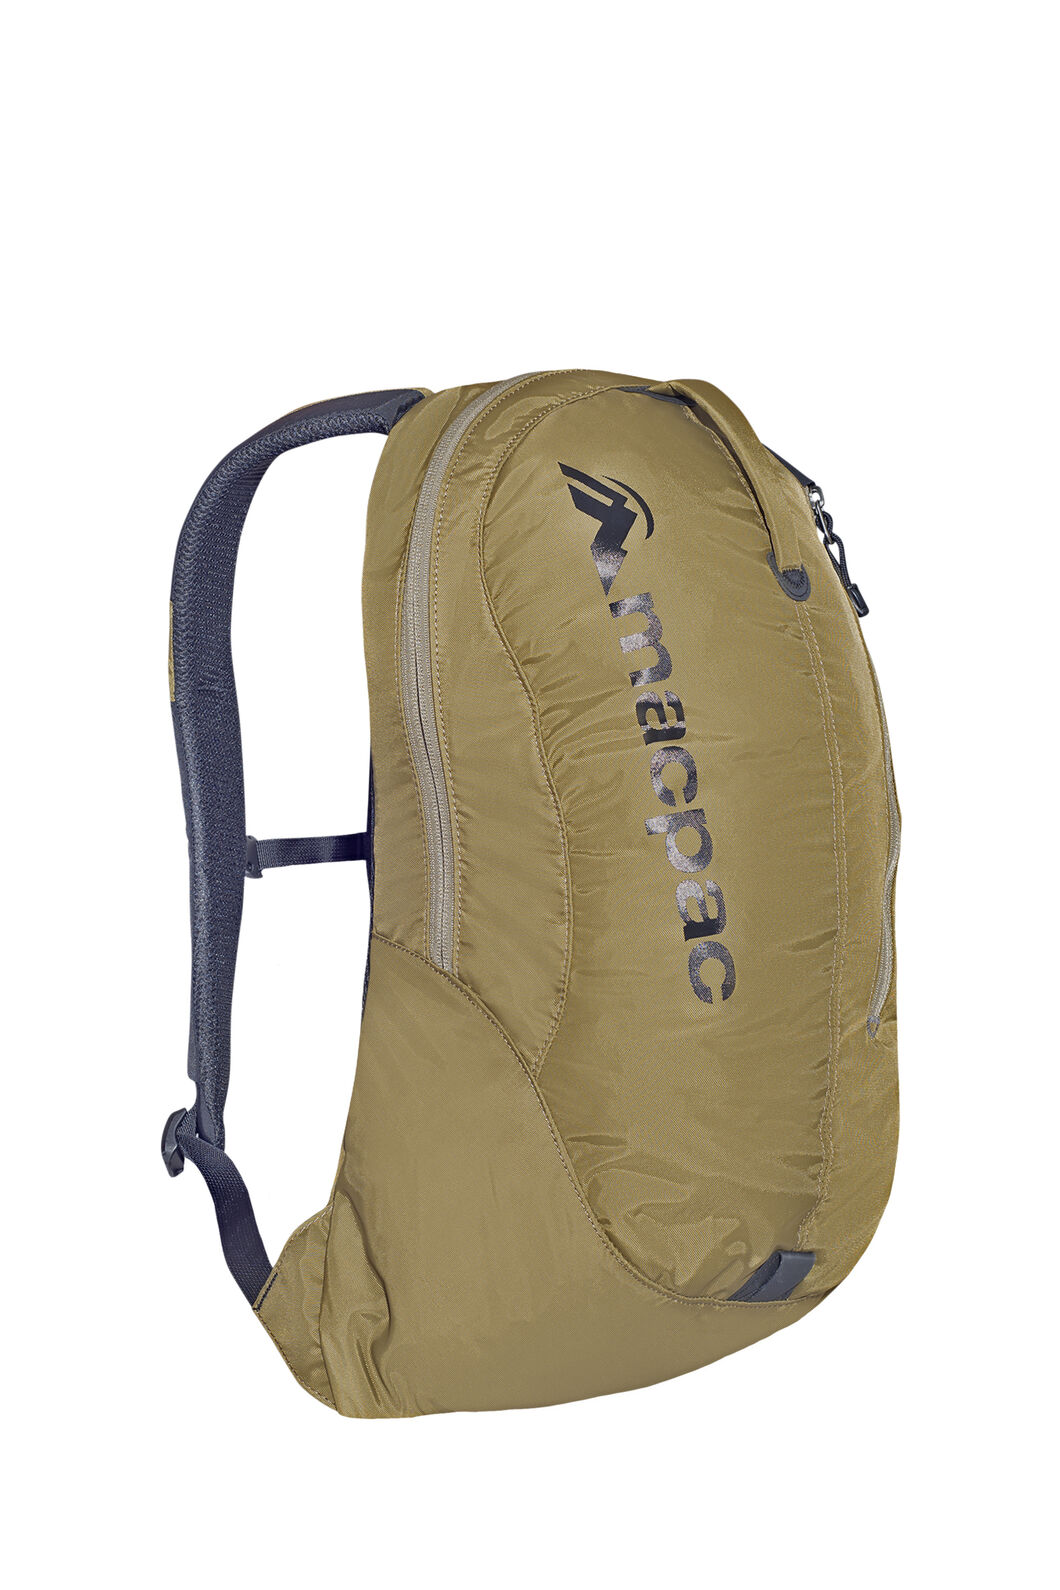 Macpac Kahuna 1.1 18L Backpack, Military Olive, hi-res